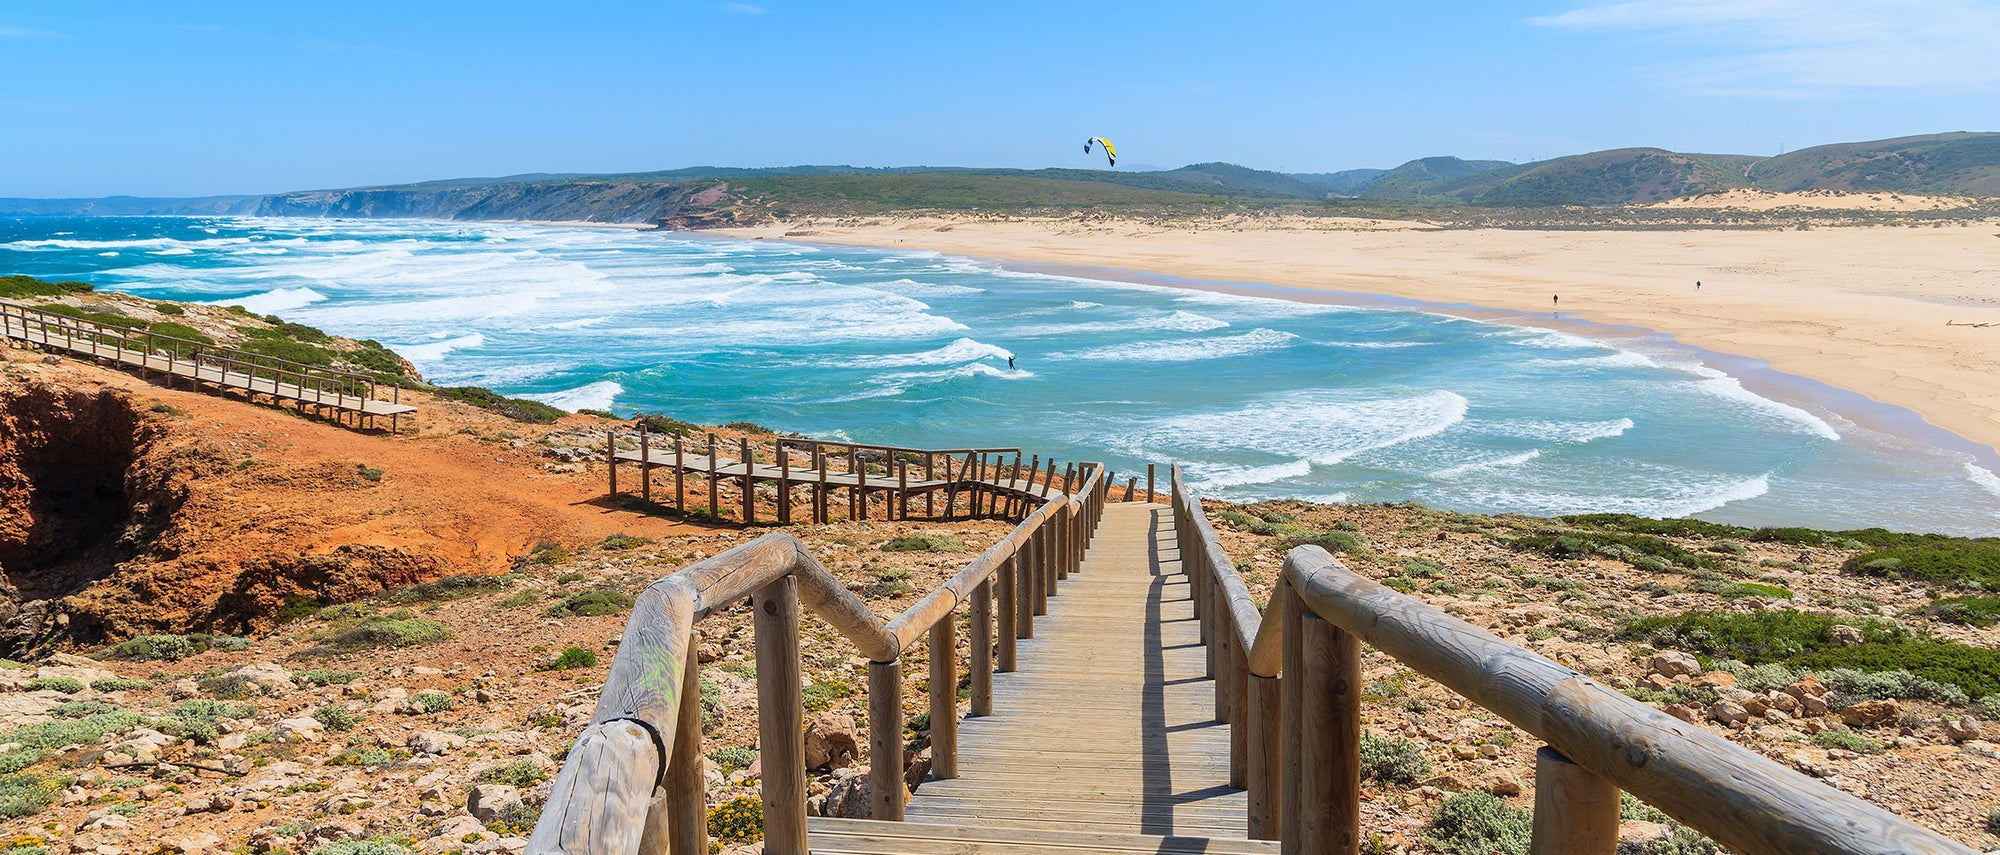 The Algarve: Surfing Portugal's Southwest Corner | WildBounds